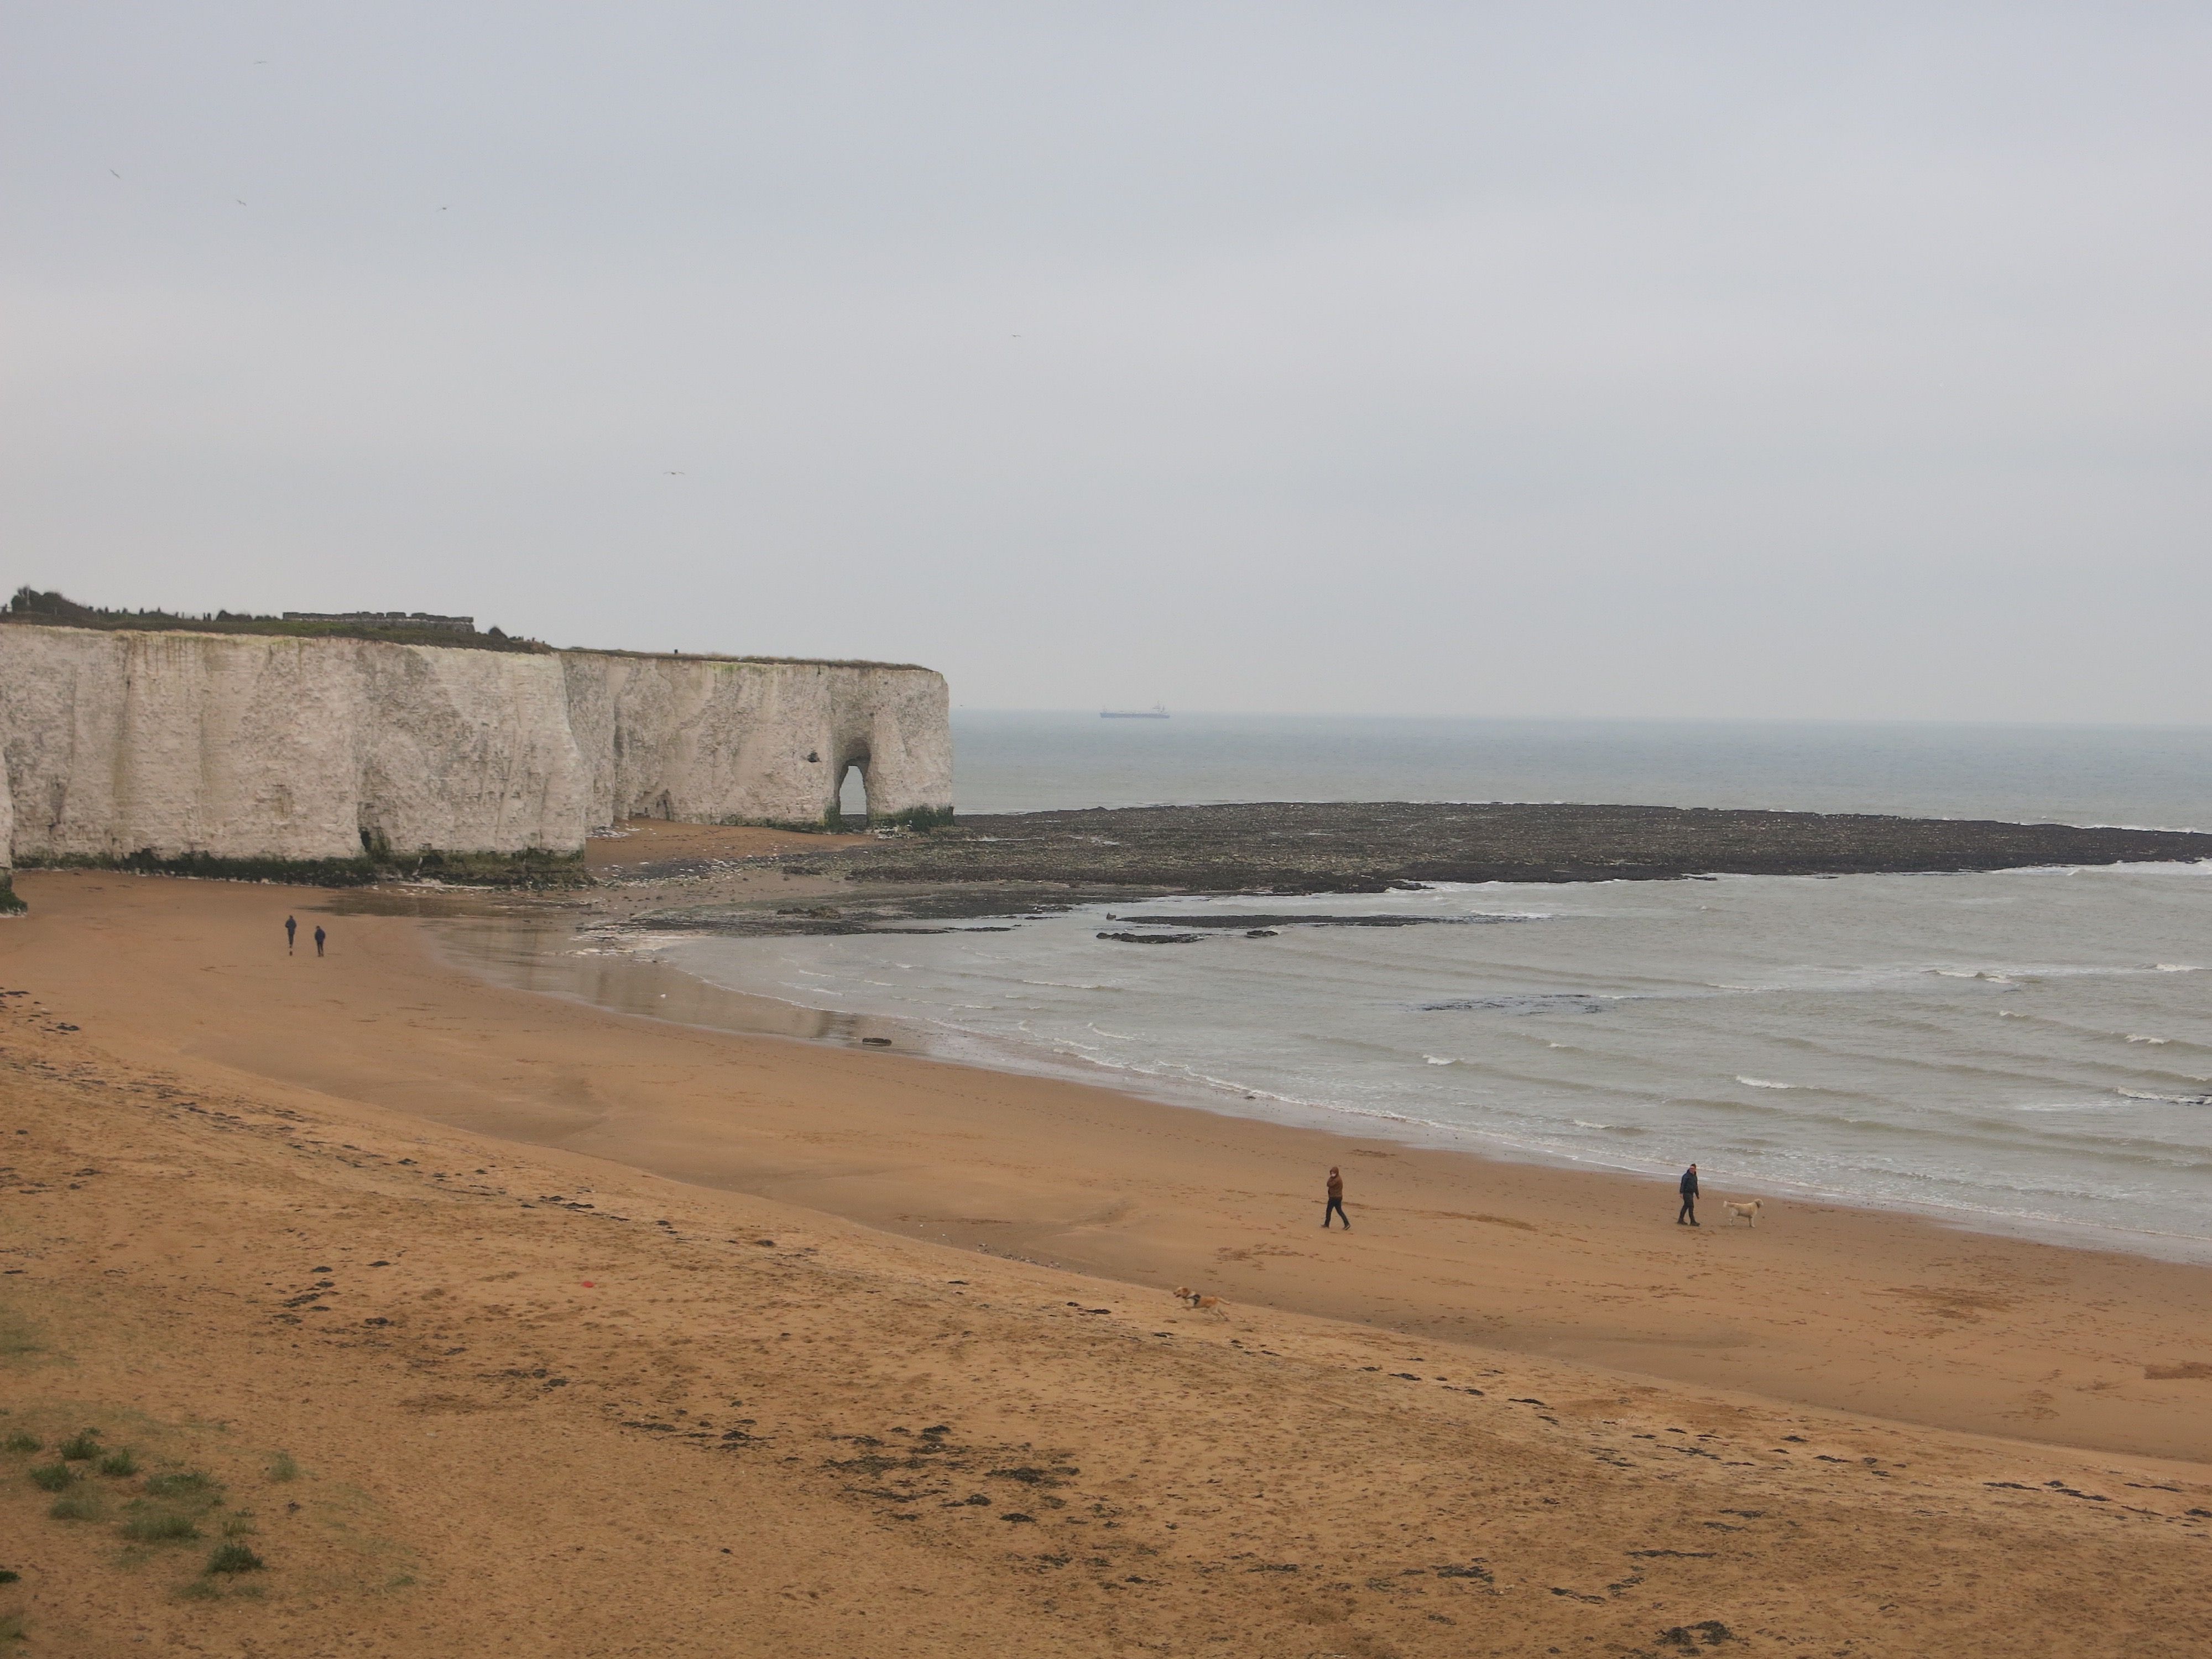 Ramsgate to Margate - 1 (13)